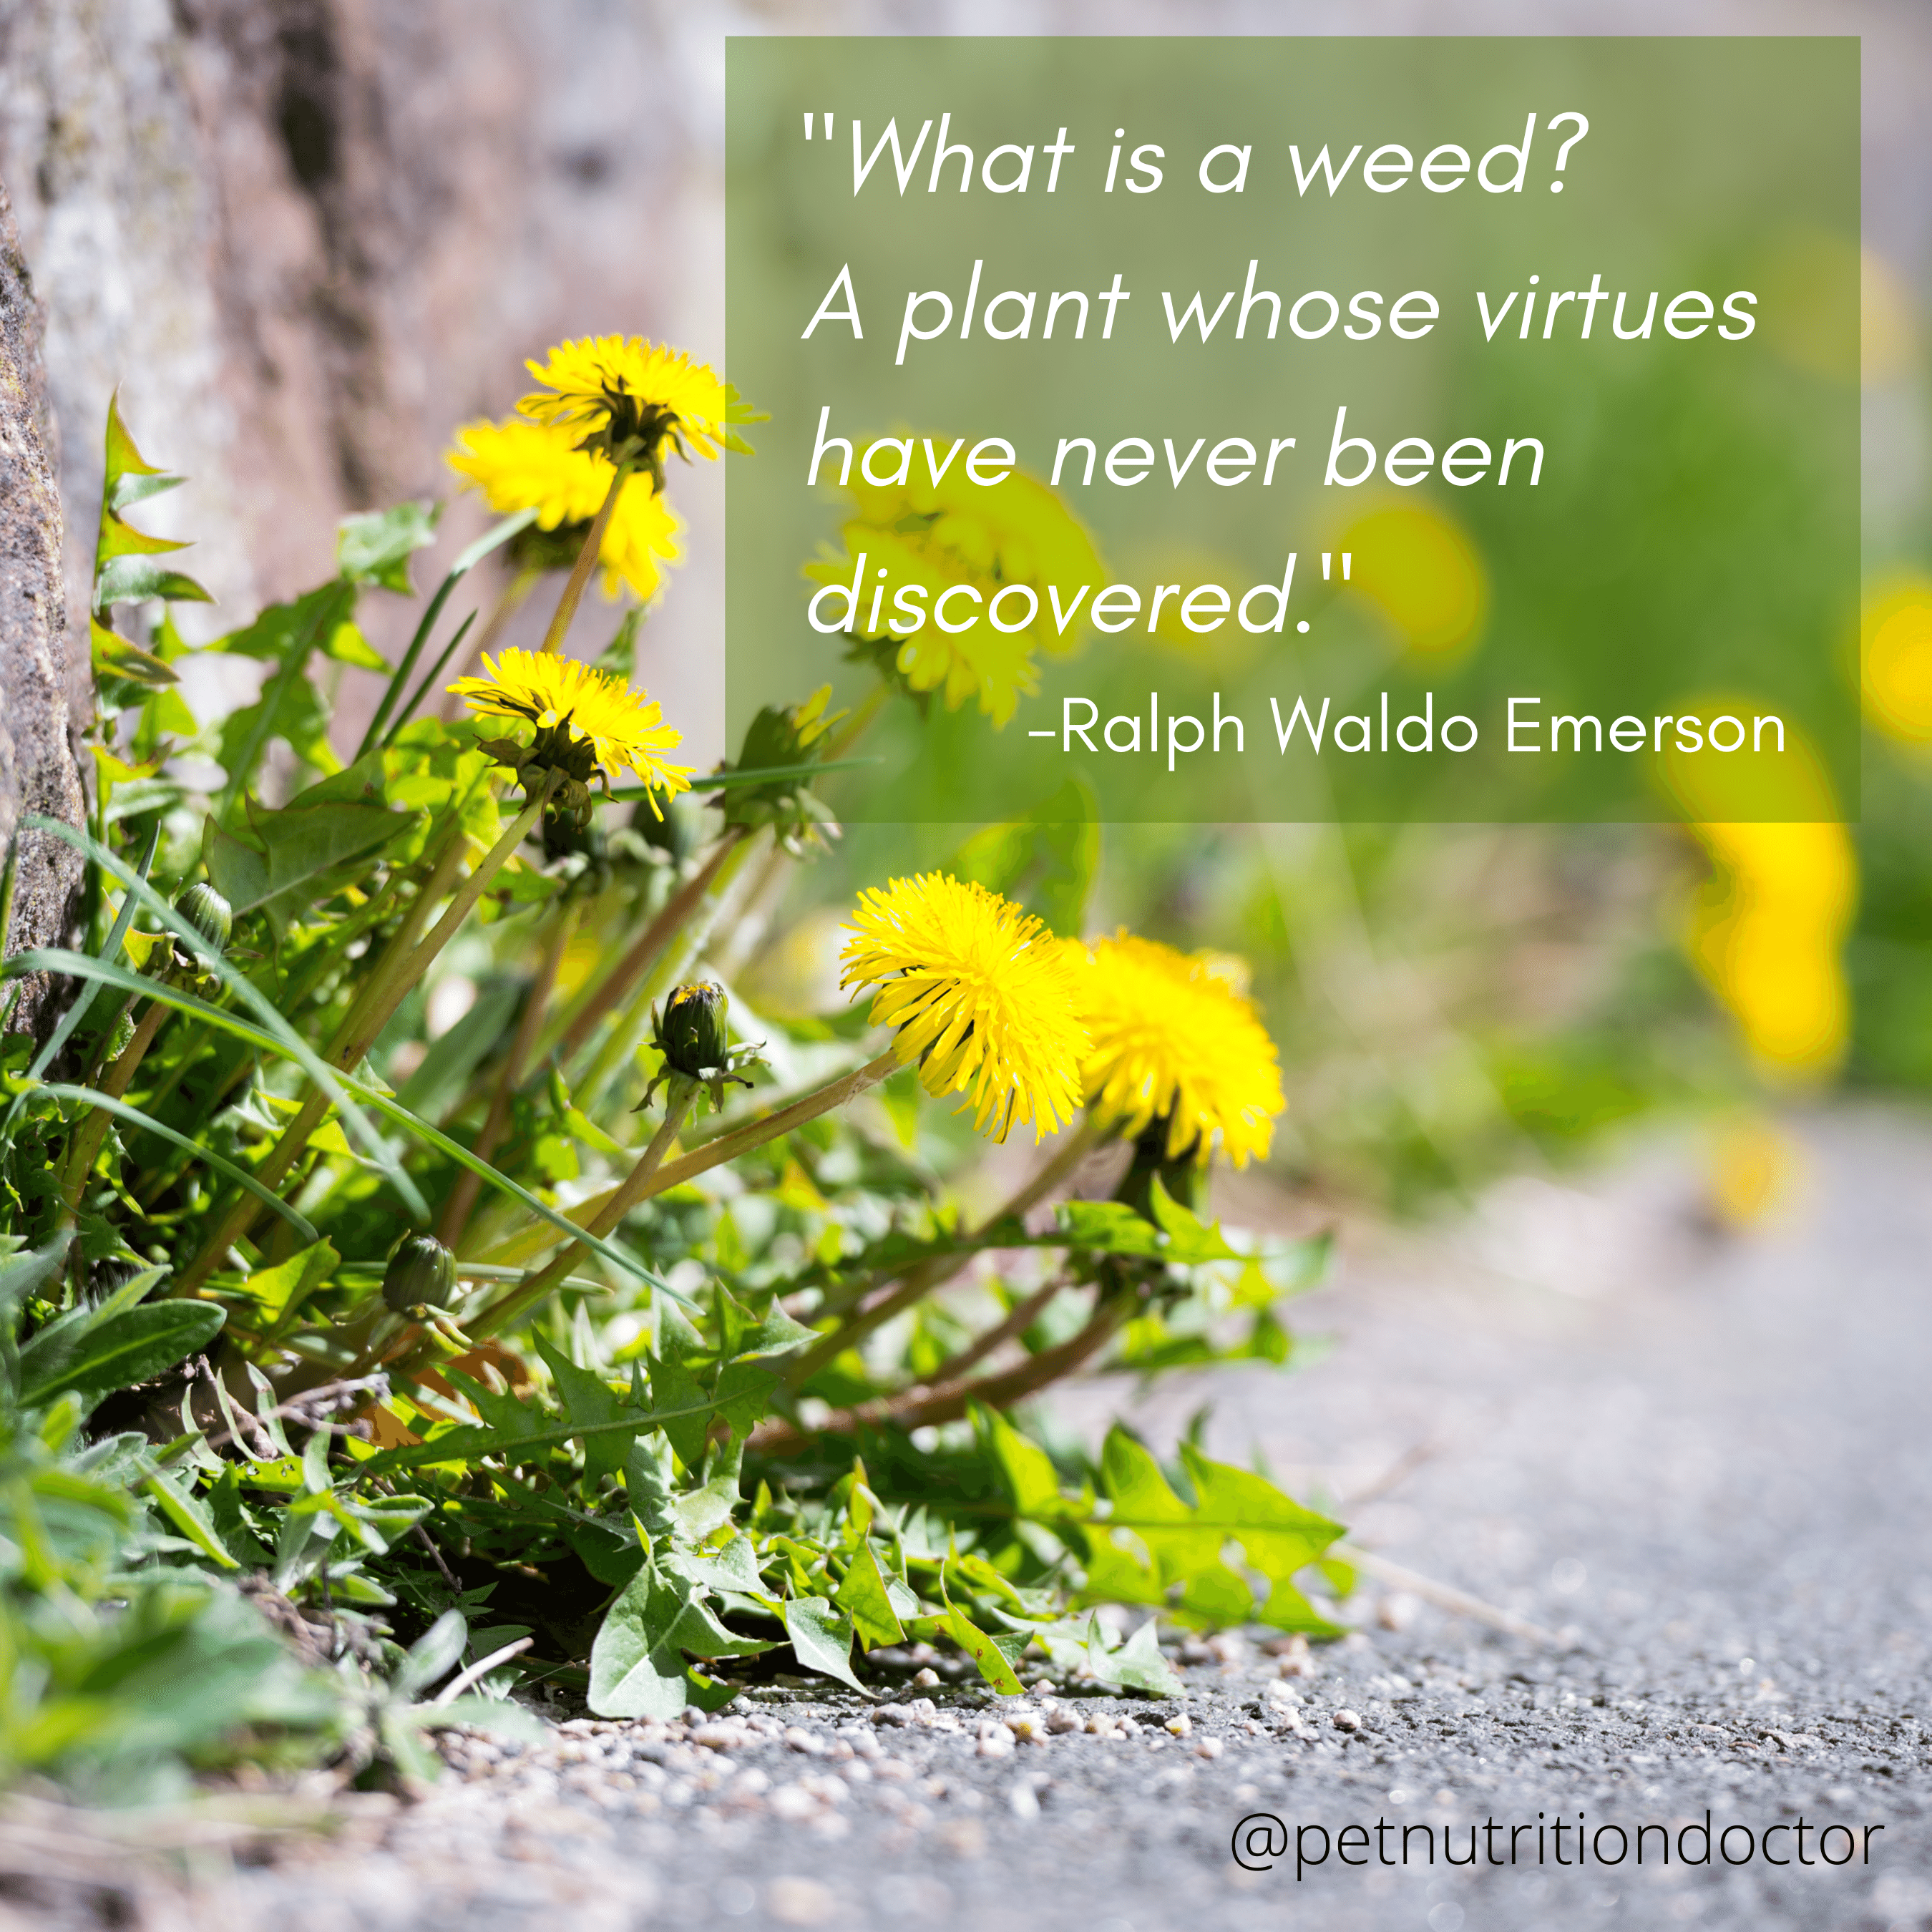 What is a weed?